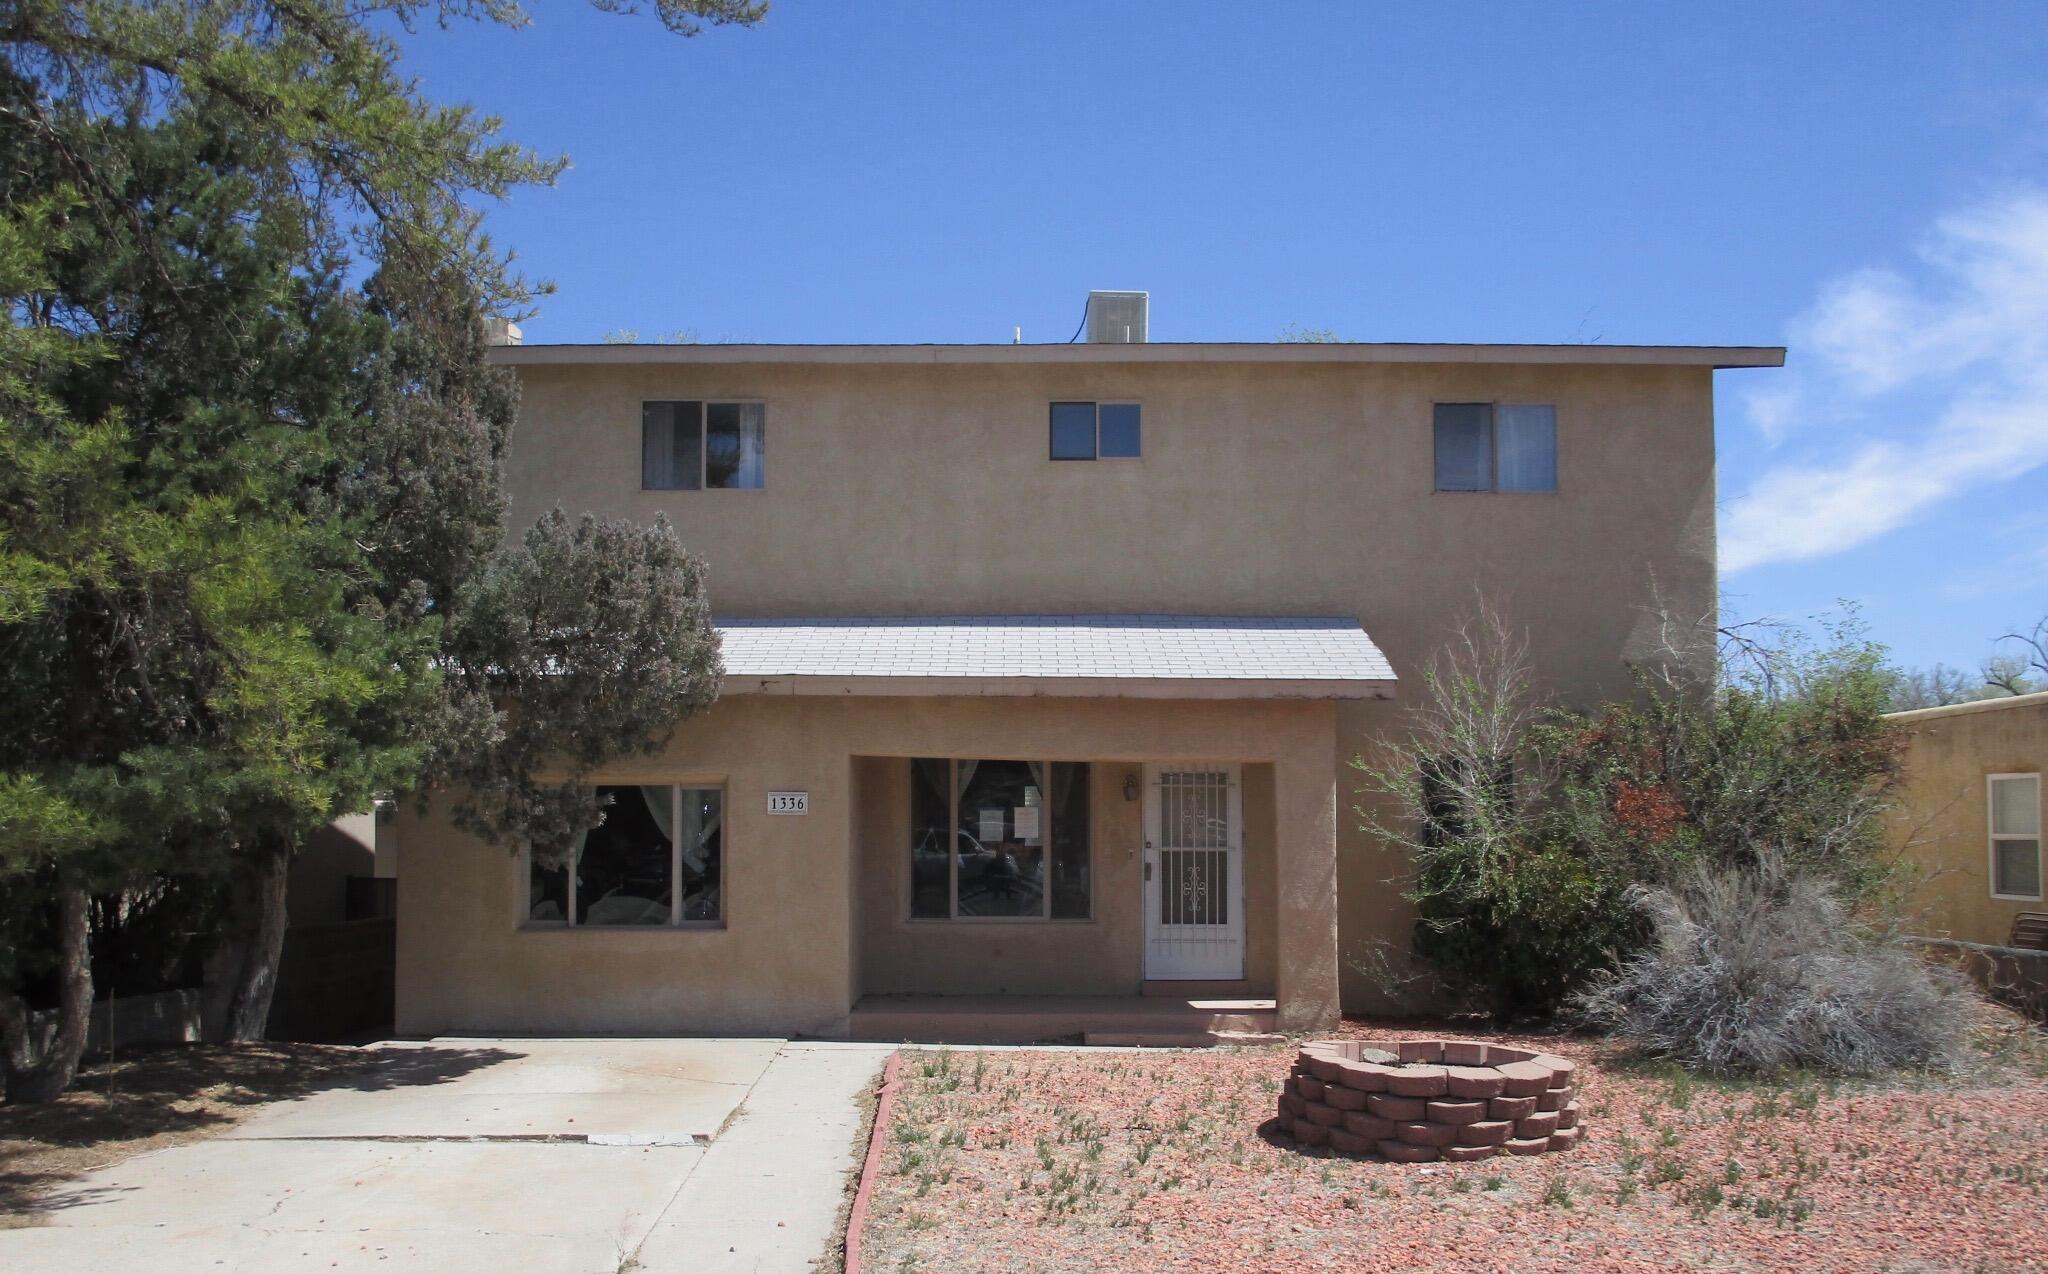 'UNDER CONTRACT TAKING BACKUP OFFERS'-  WILL NOT LAST!!!  Unique property has Guest House/In-Law Suite & Basement only blocks too UNM. The Main house on first floor has 3 bedrooms, 2 baths, and 2 living areas. Then, with a separate entrance, upstairs there is a COMPLETE other living quarters! Upstairs has 2 bedrooms, 2 baths, and a large living area with kitchenette/wet bar area, and dining room! Perfect for a mother-in-law quarters, guests, or Rental. But wait... there's more! A large backyard with storage shed along with an approx. 380 sqft. unfinished basement. You will not find another property like this in such a cool neighborhood.***No warranties or guarantees expressed or implied! Buyer to pay for their own Inspections for Buyers knowledge only!*